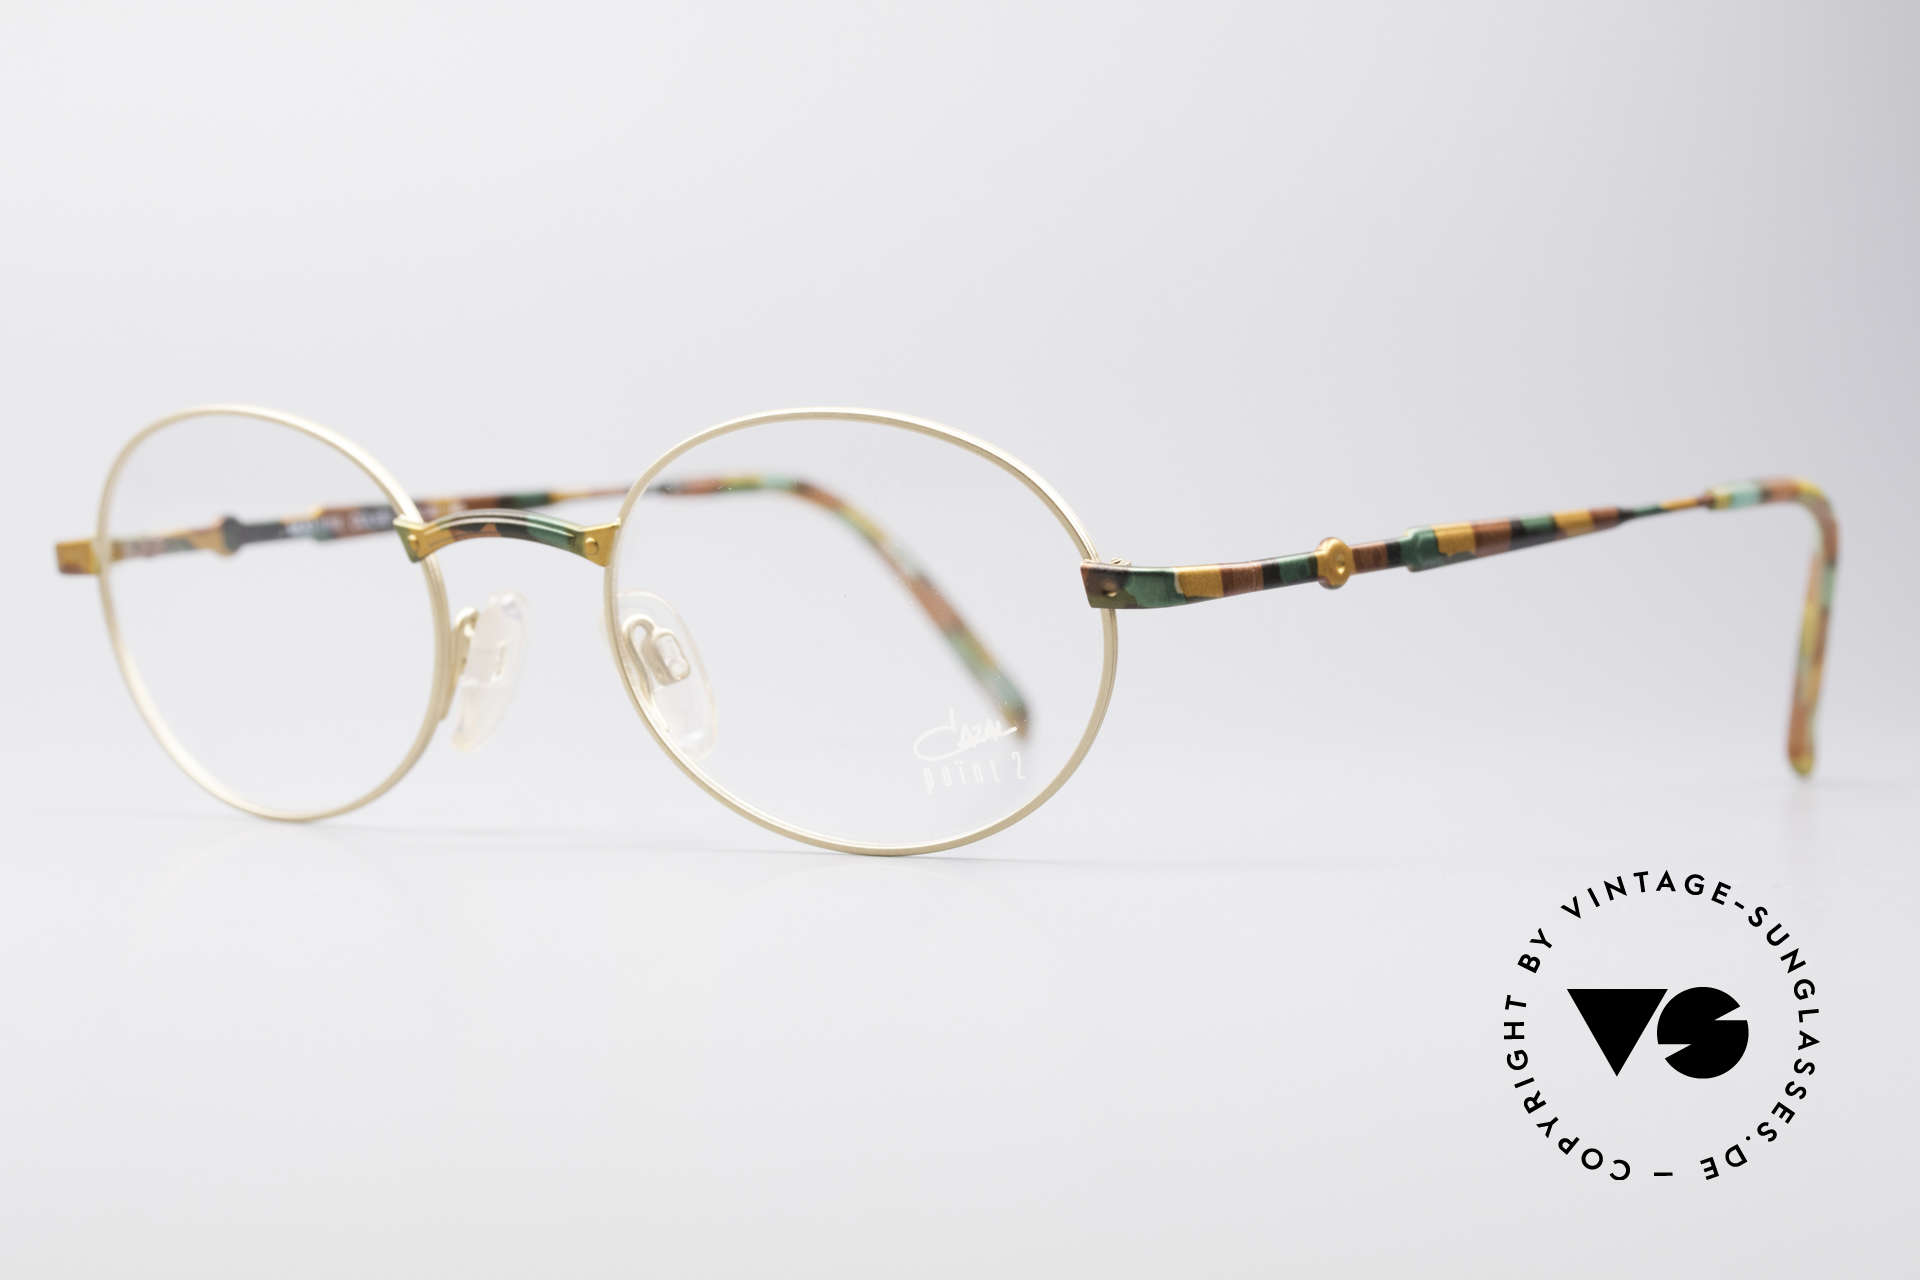 Cazal 1114 - Point 2 Round Vintage Eyeglasses, plain design with clear and pures lines; just timeless!, Made for Men and Women